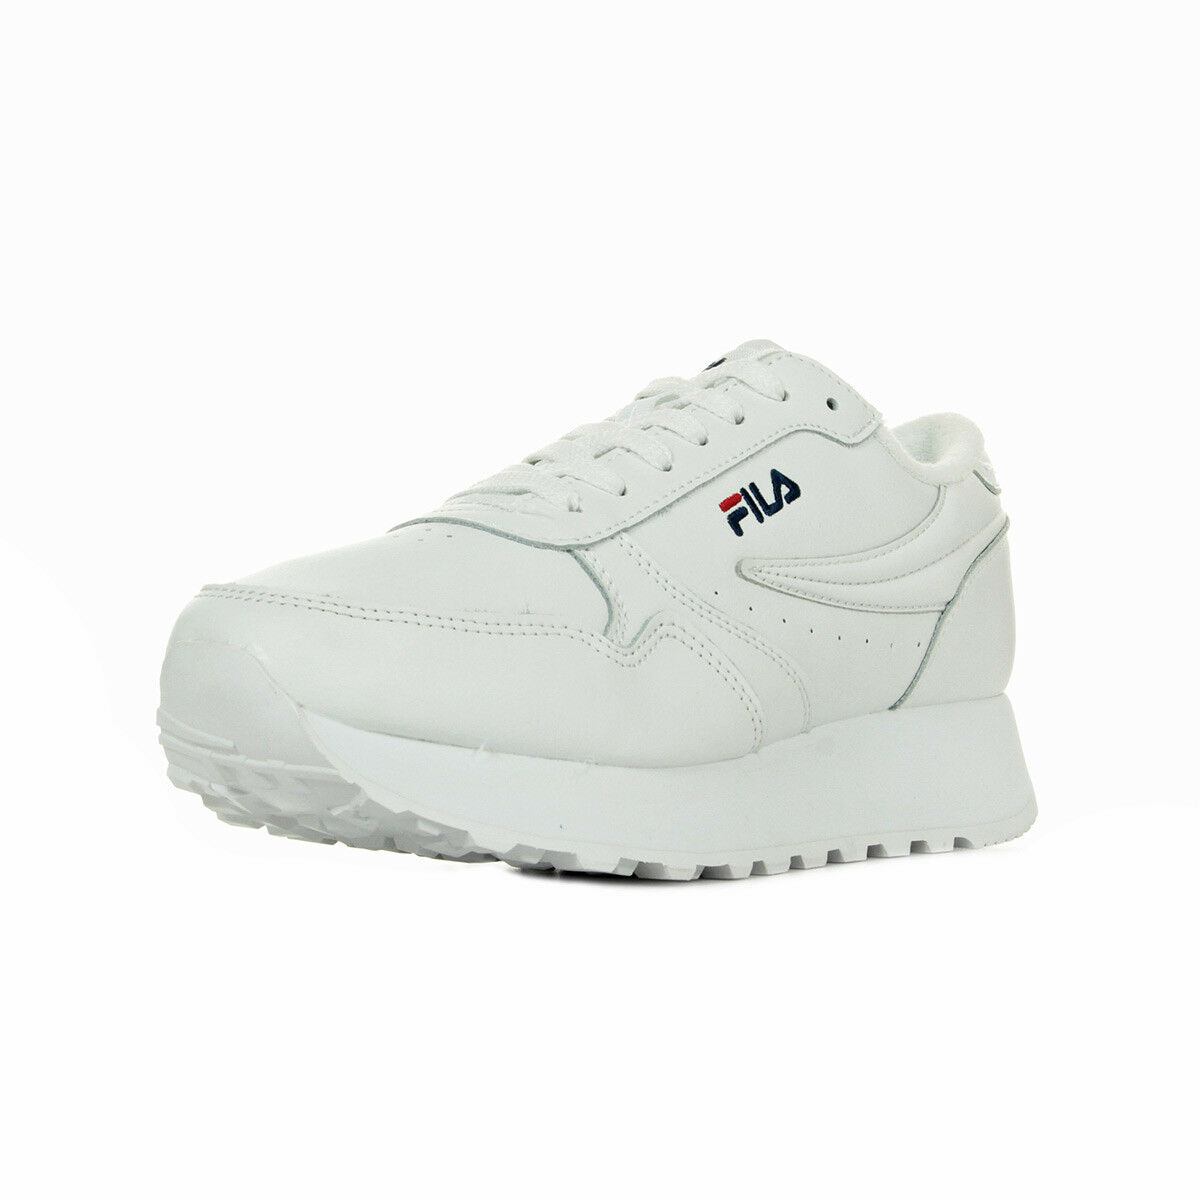 shoes Baskets Fila femme Orbit Zeppa L Wmns size white whitehe Cuir